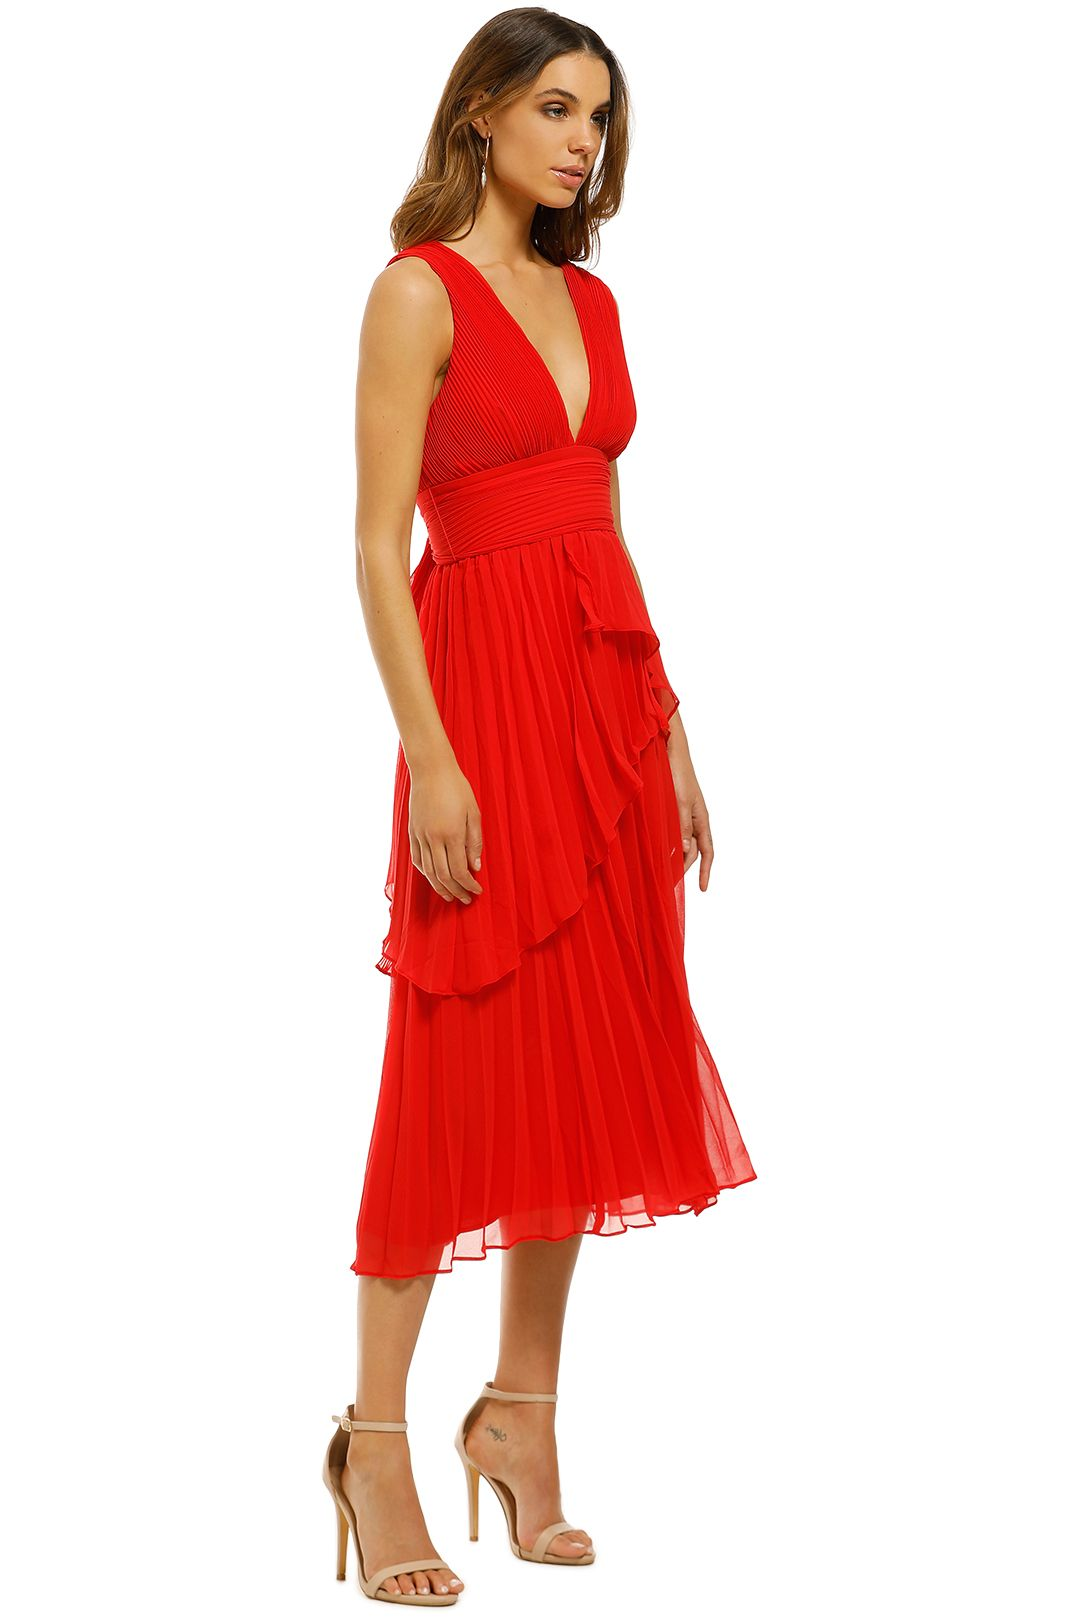 Talulah-Sugar-and-Spice-Midi-Dress-Red-Side